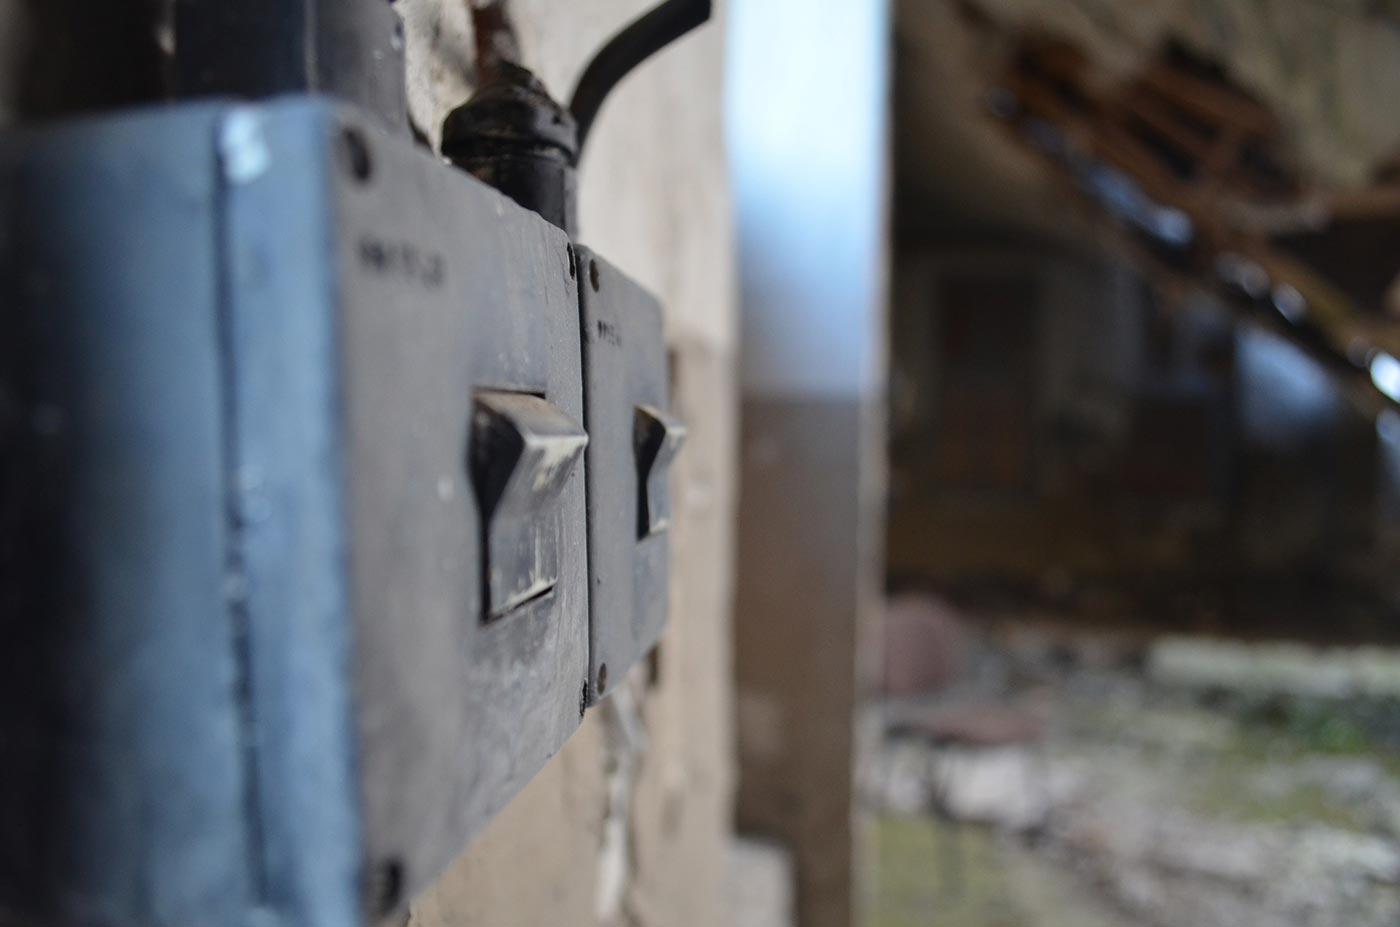 Old switches